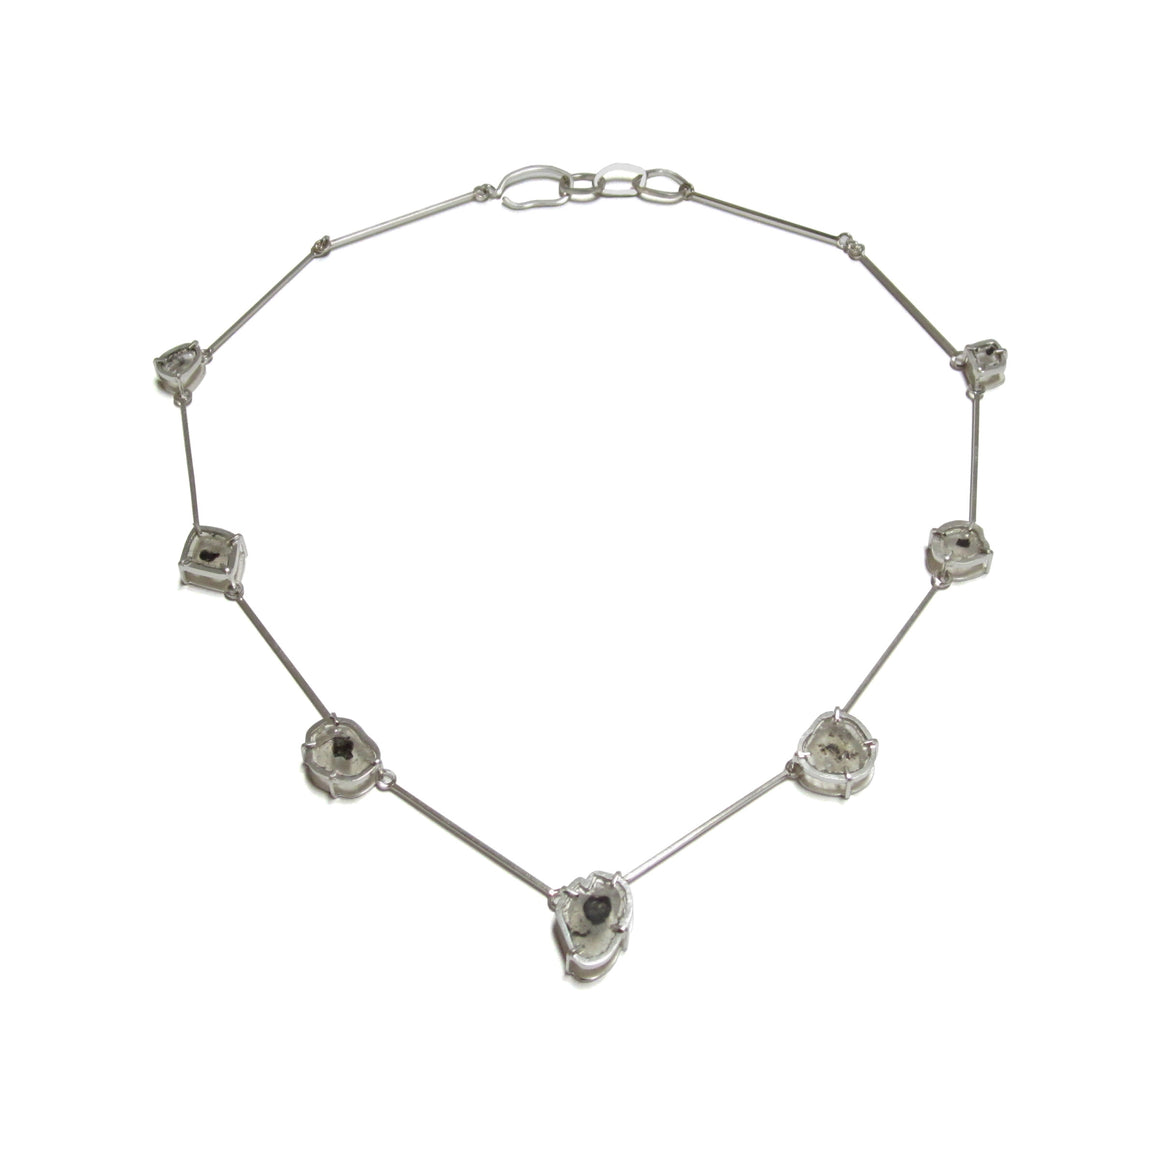 handmade, sterling silver, diamond slice, one of a kind necklace by Seth Papac